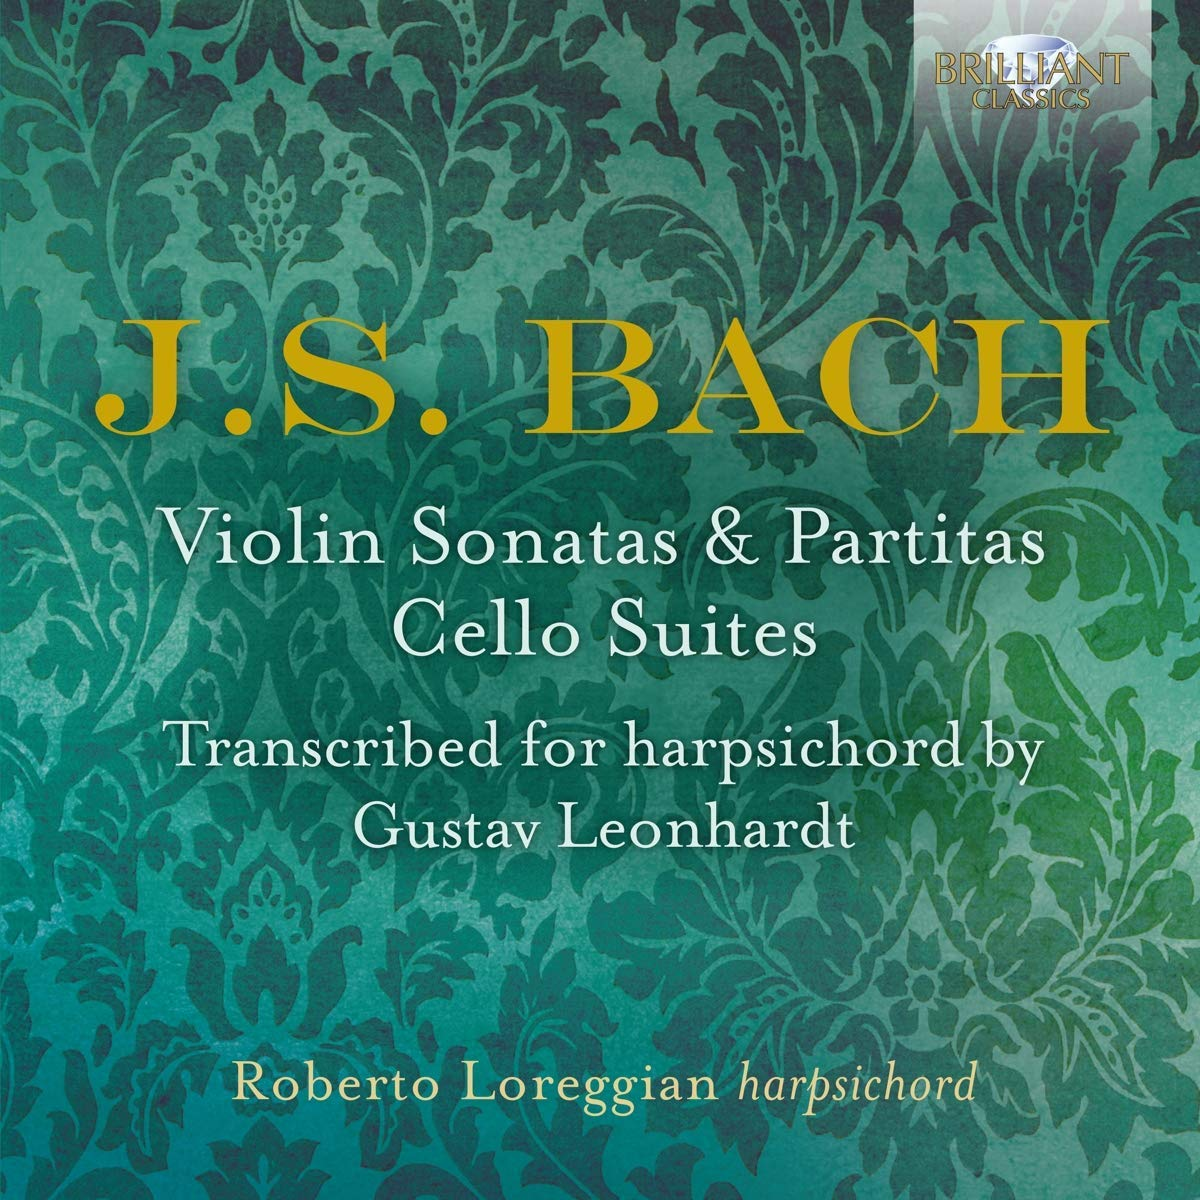 Roberto Loreggian - Bach's Instrumental Works - Discography